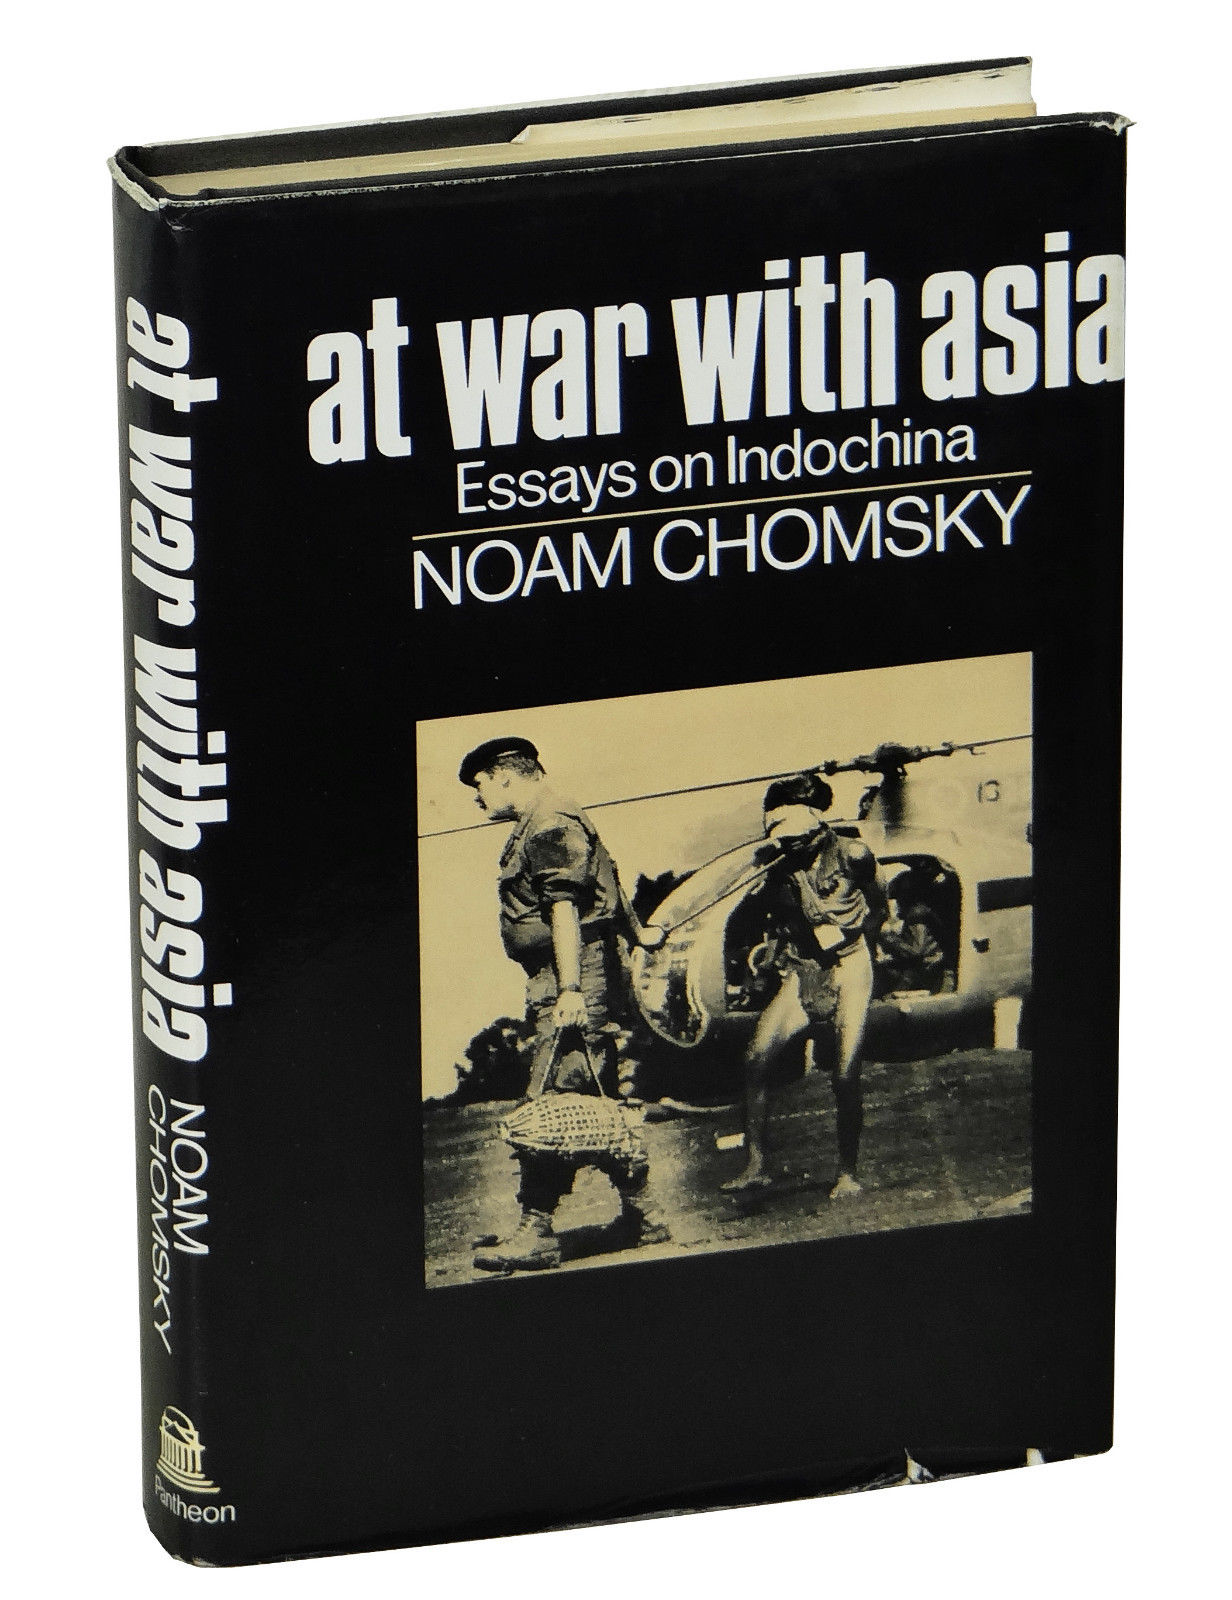 Earthquake Essays Noam Chomsky At  Creativity Essay Examples also Example Of An Essay With A Thesis Statement At War With Asia Essays On Indochina  Noam Chomsky  First Edition High School Admissions Essay